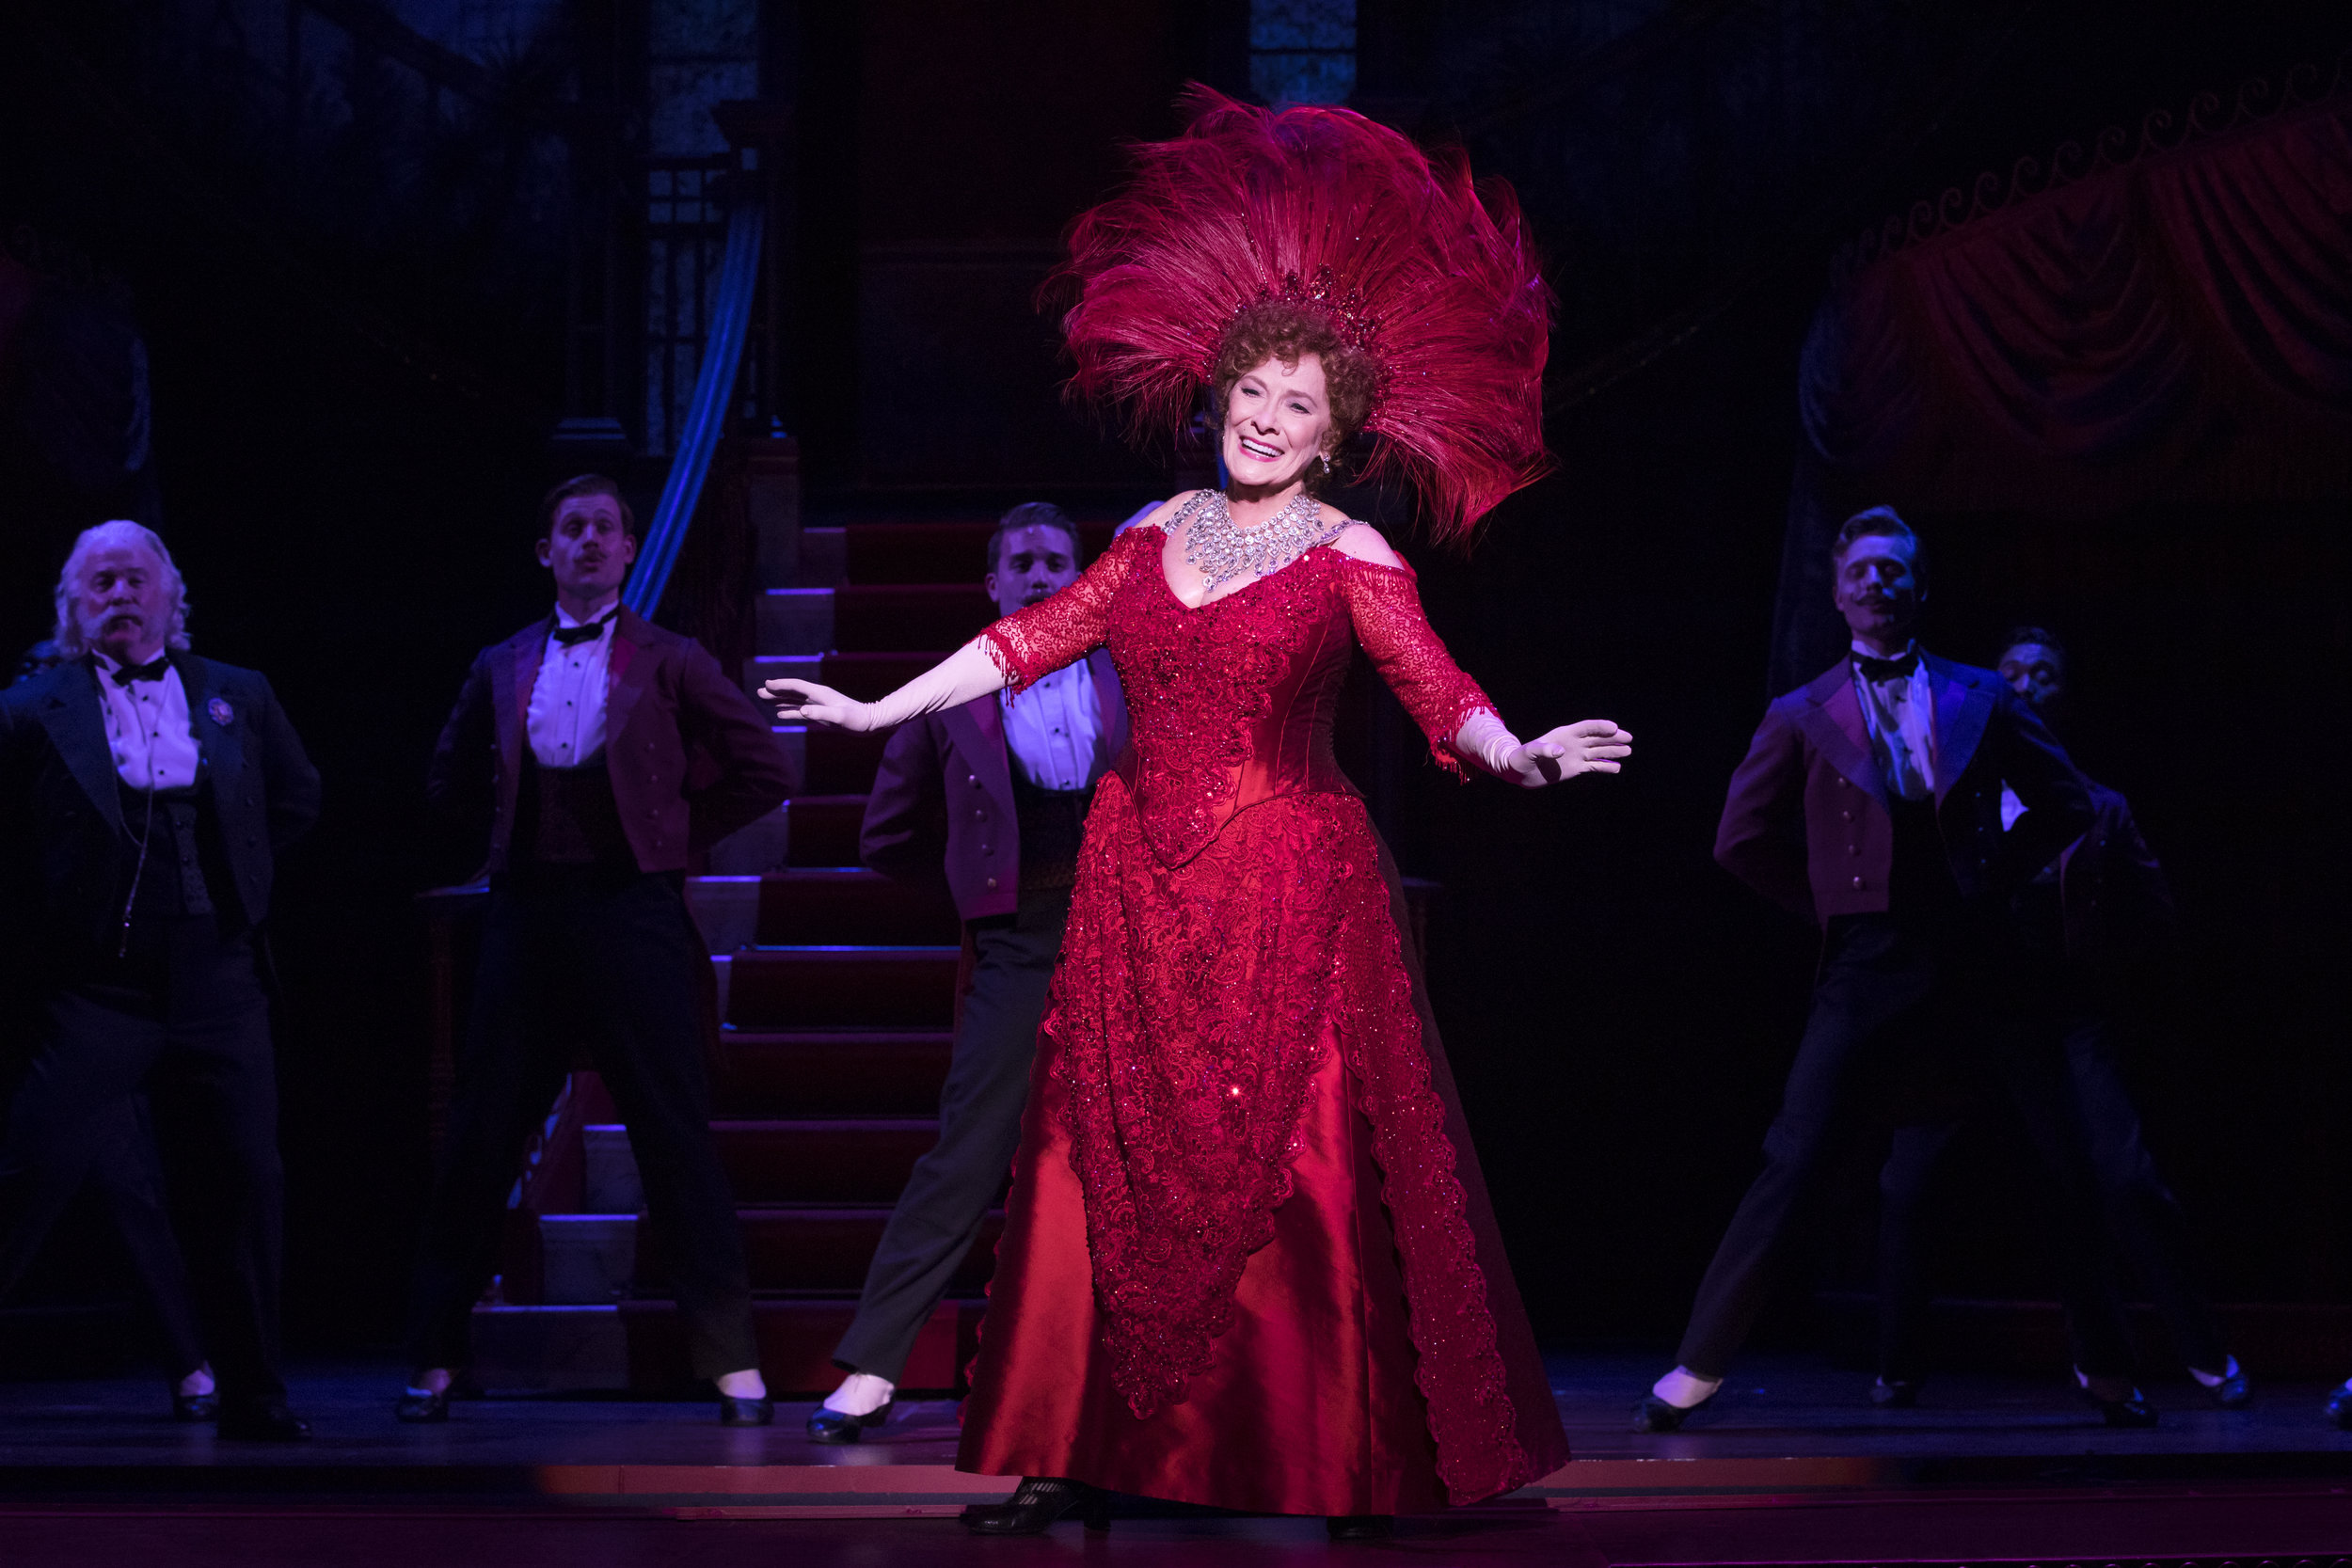 7_Betty Buckley and Hello, Dolly! National Tour Company - 2018, Julieta Cervantes.jpg